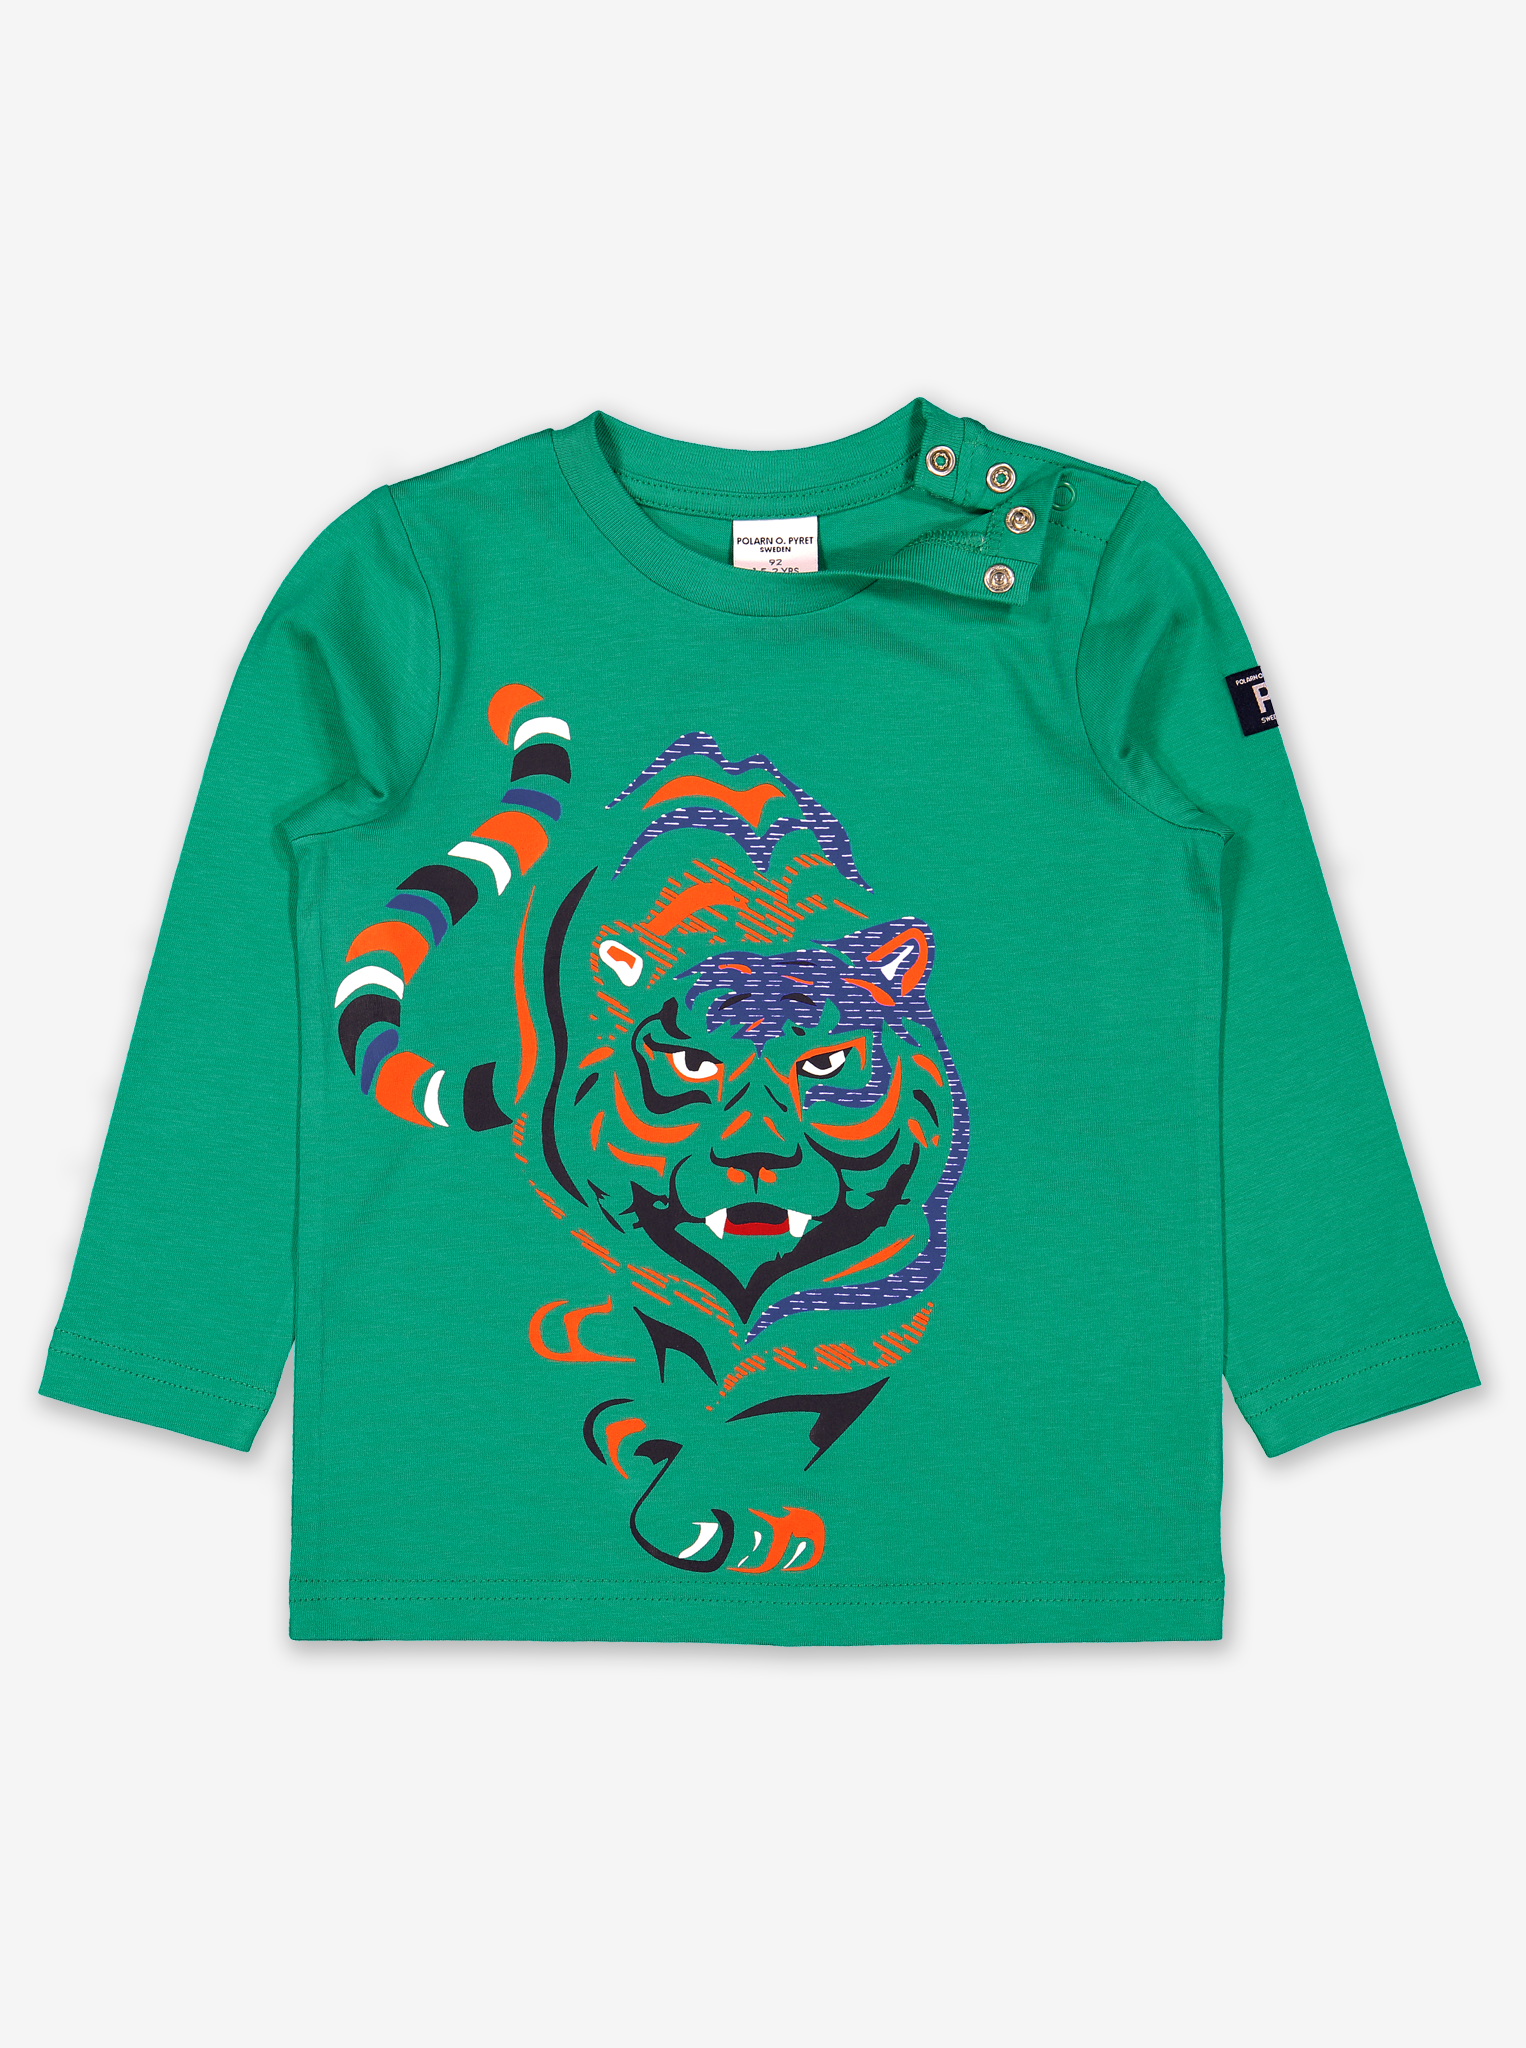 Tiger Print Kids Top-Boy-1-6y-Green